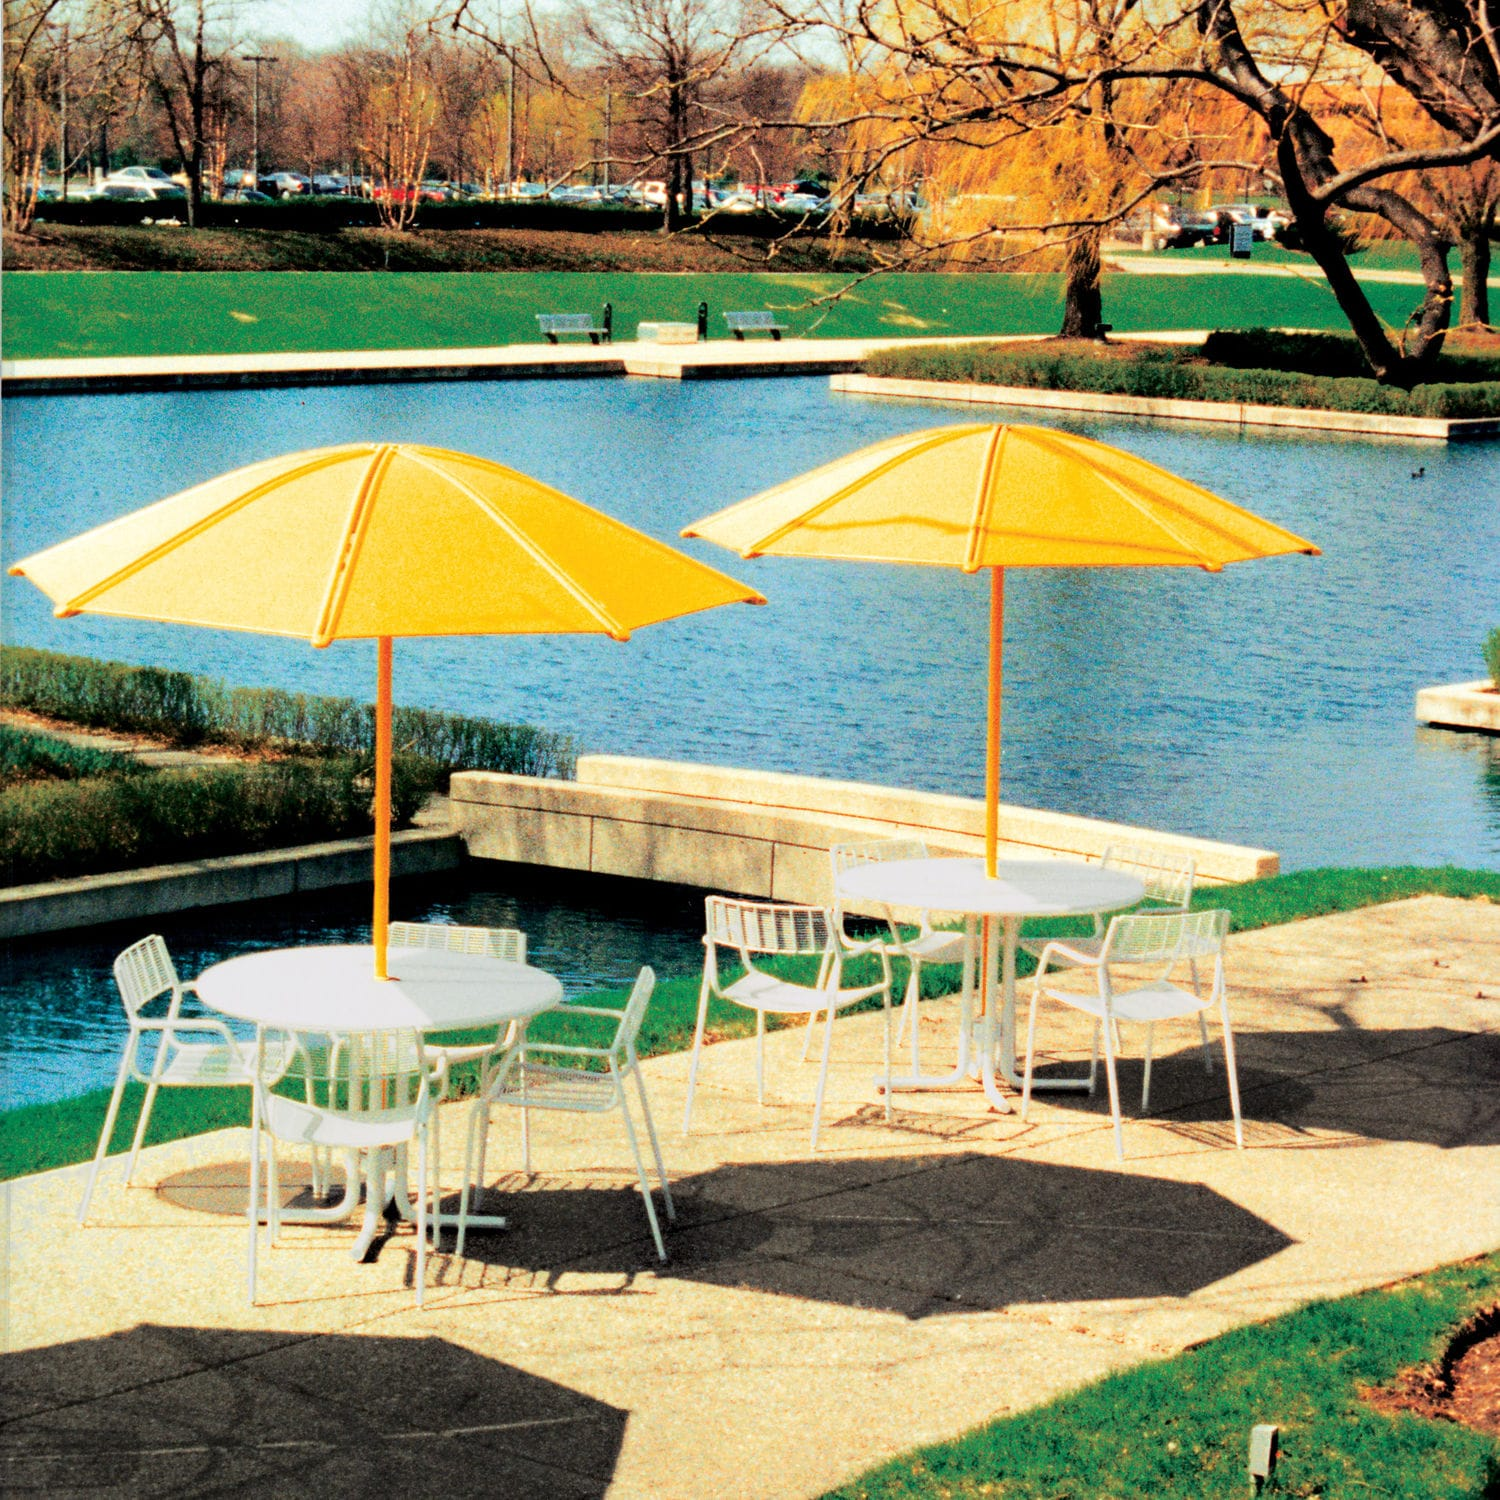 resin patio umbrellas pool arm commercial chairs showcase client foodservice and hospitality umbrella furniture